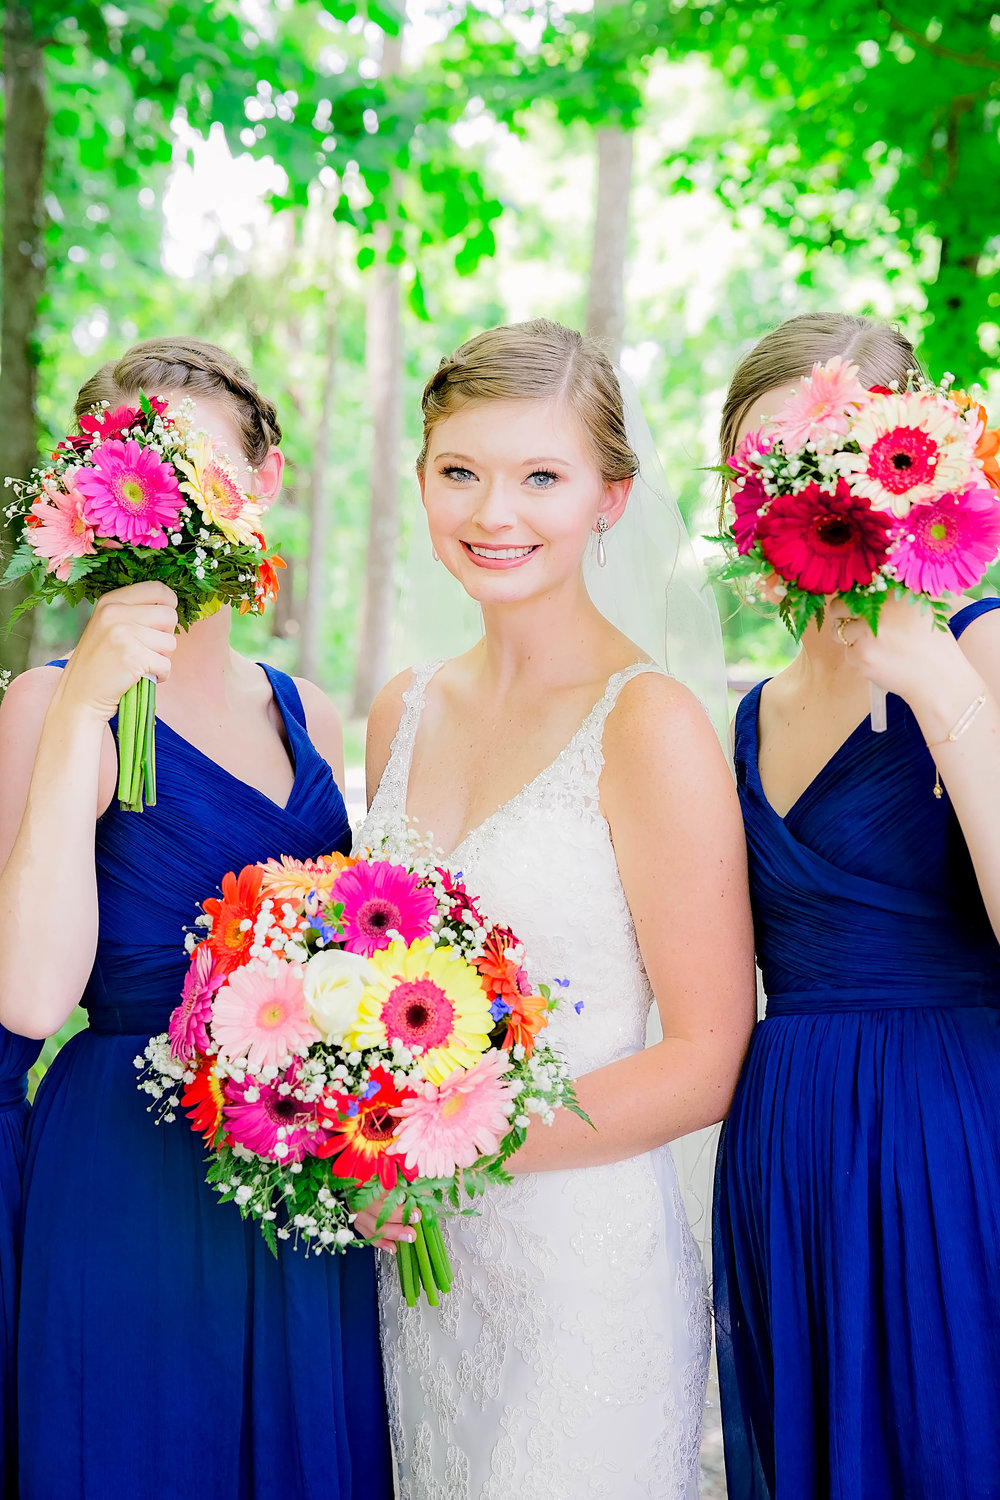 Hot Springs, NC wedding, East Tennessee Wedding photography, wedding party, bridesmaids, bridal party, bridal bouquet, wedding flowers